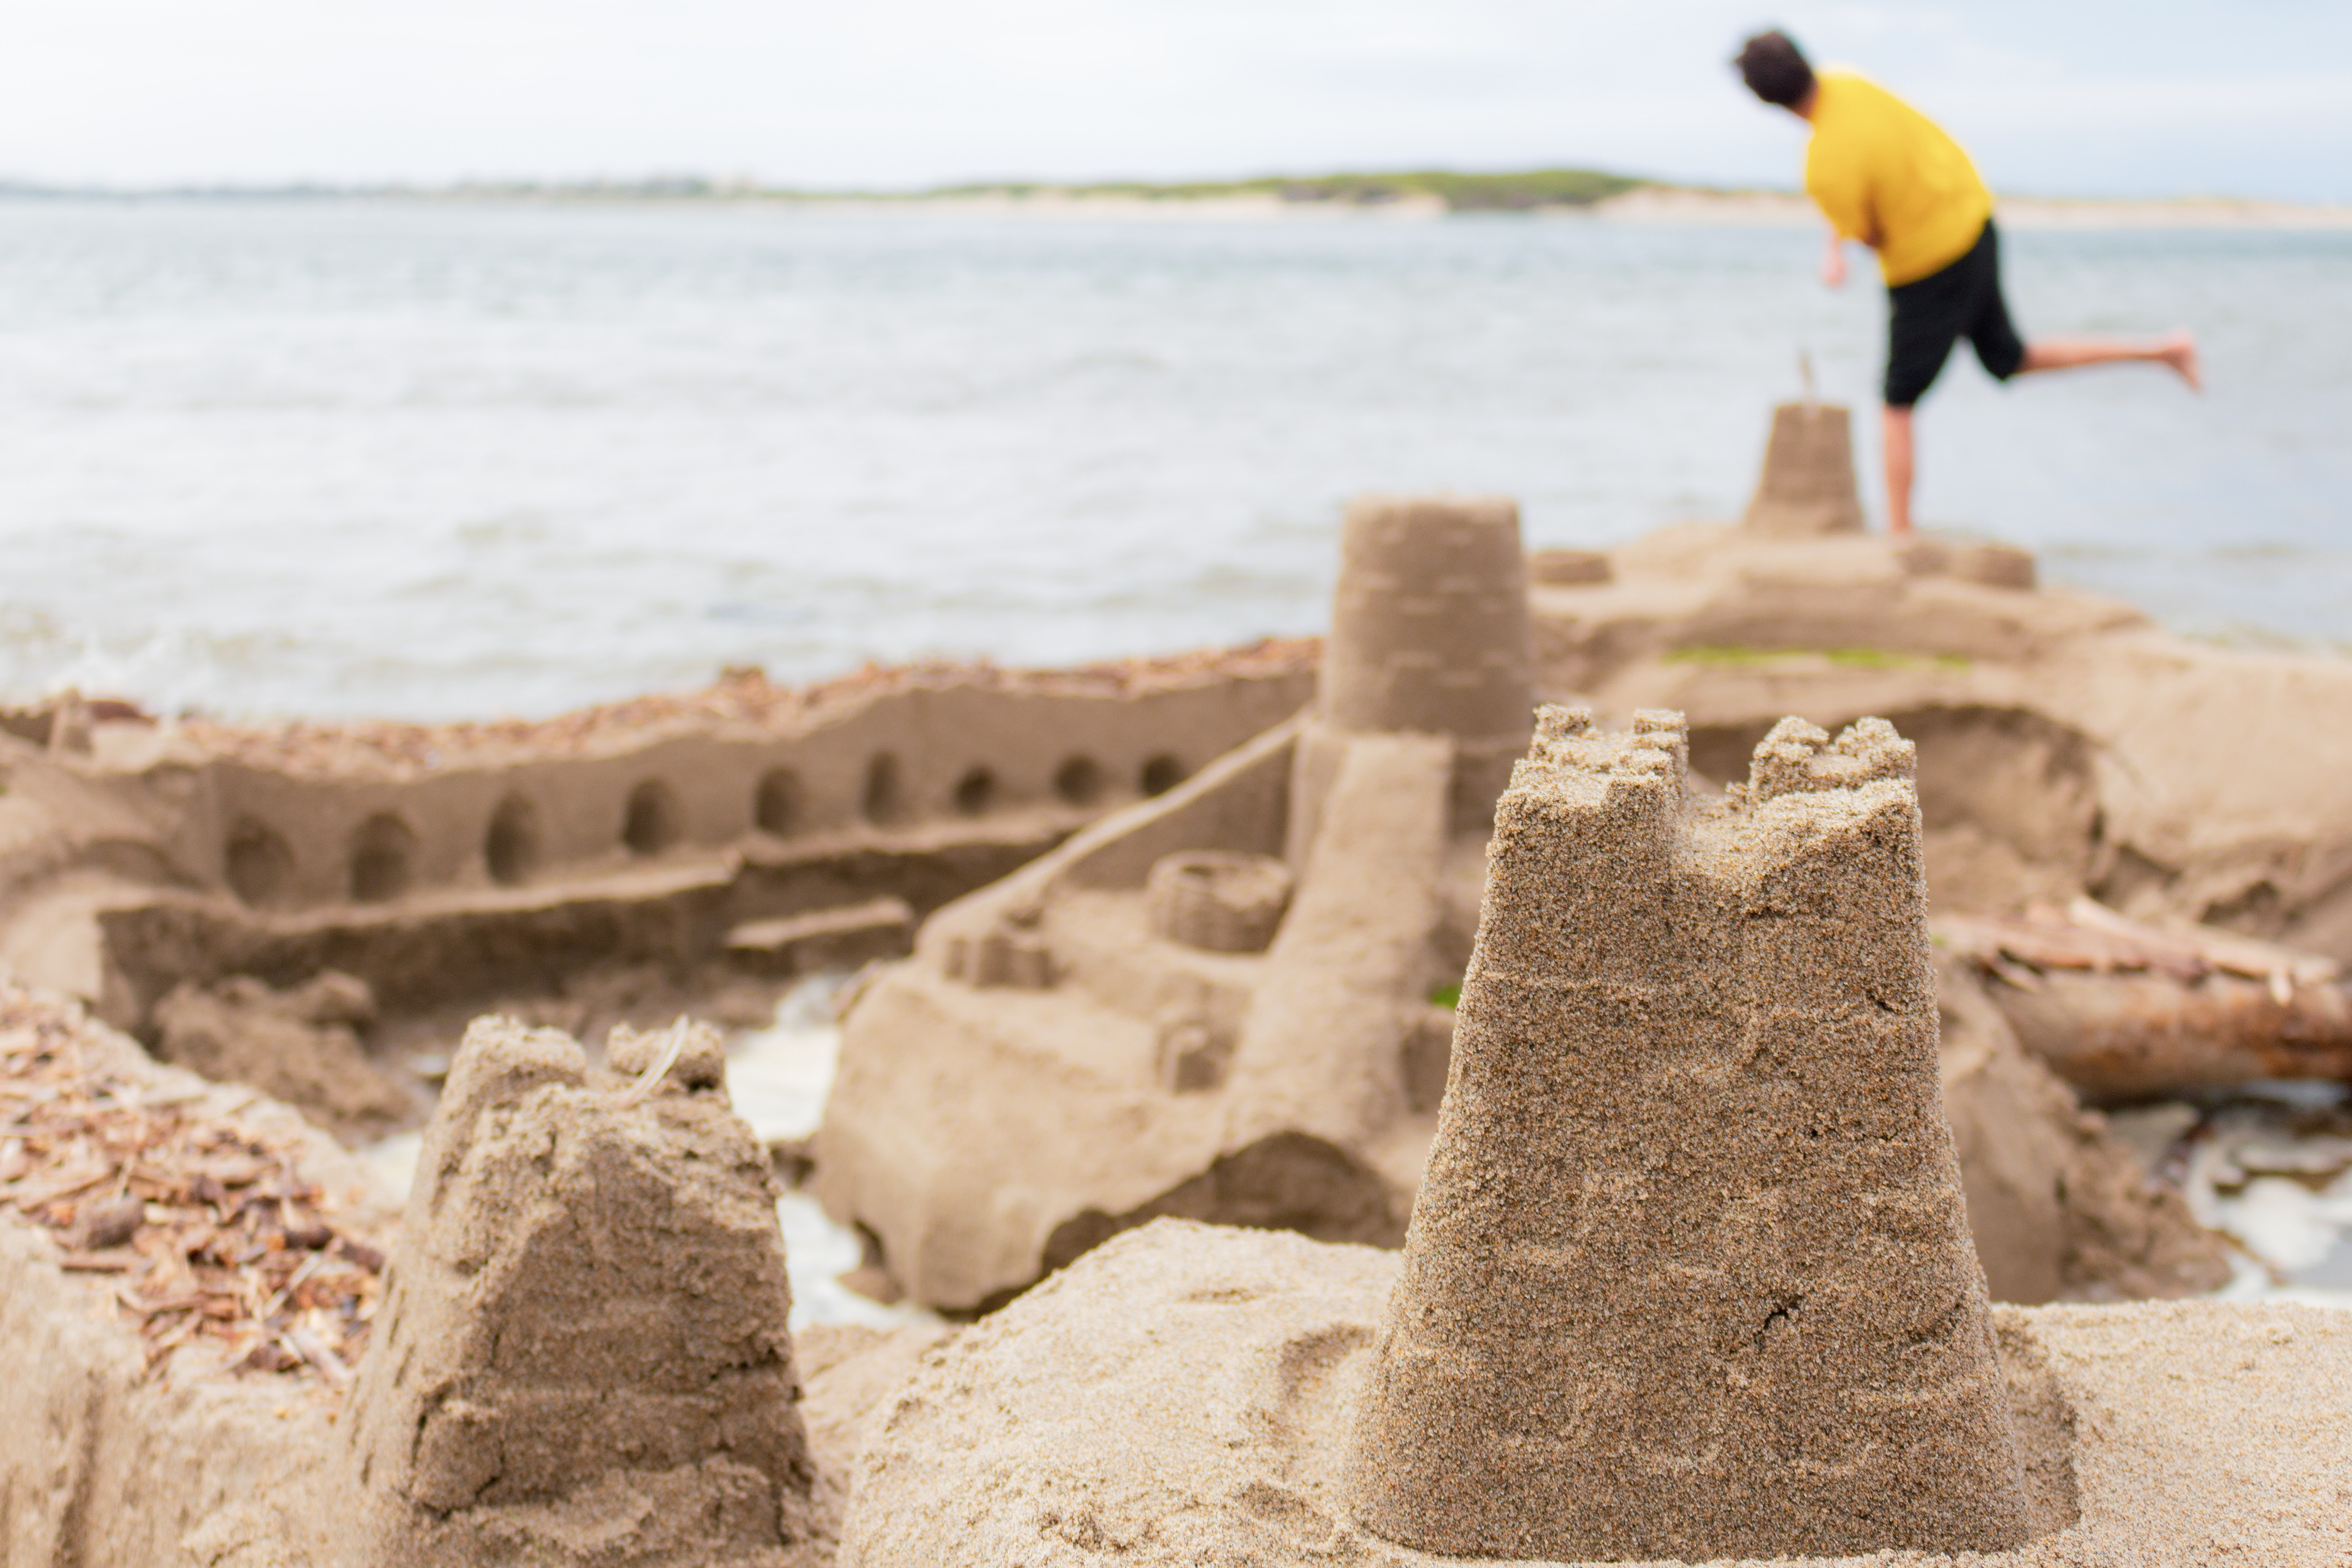 selective focus photography of sand castle near man standing on seashore